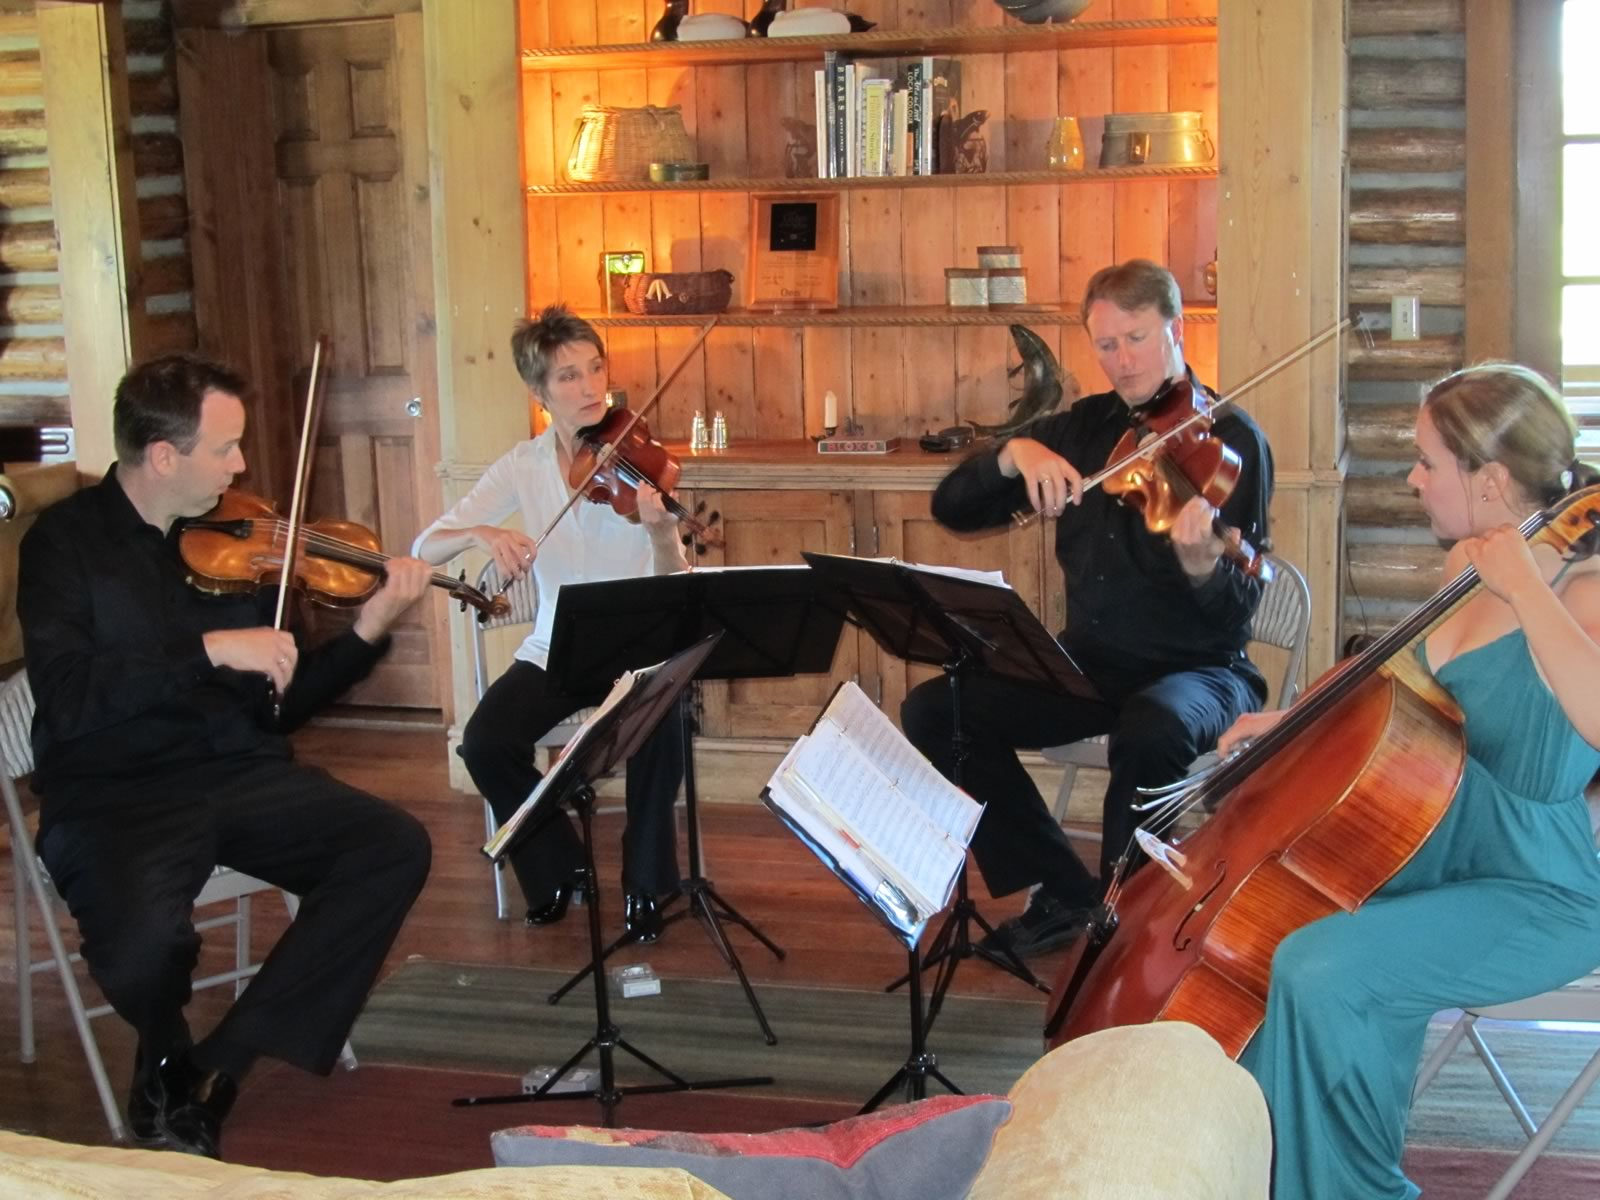 The Fry Street Quartet performing in the Lodge.